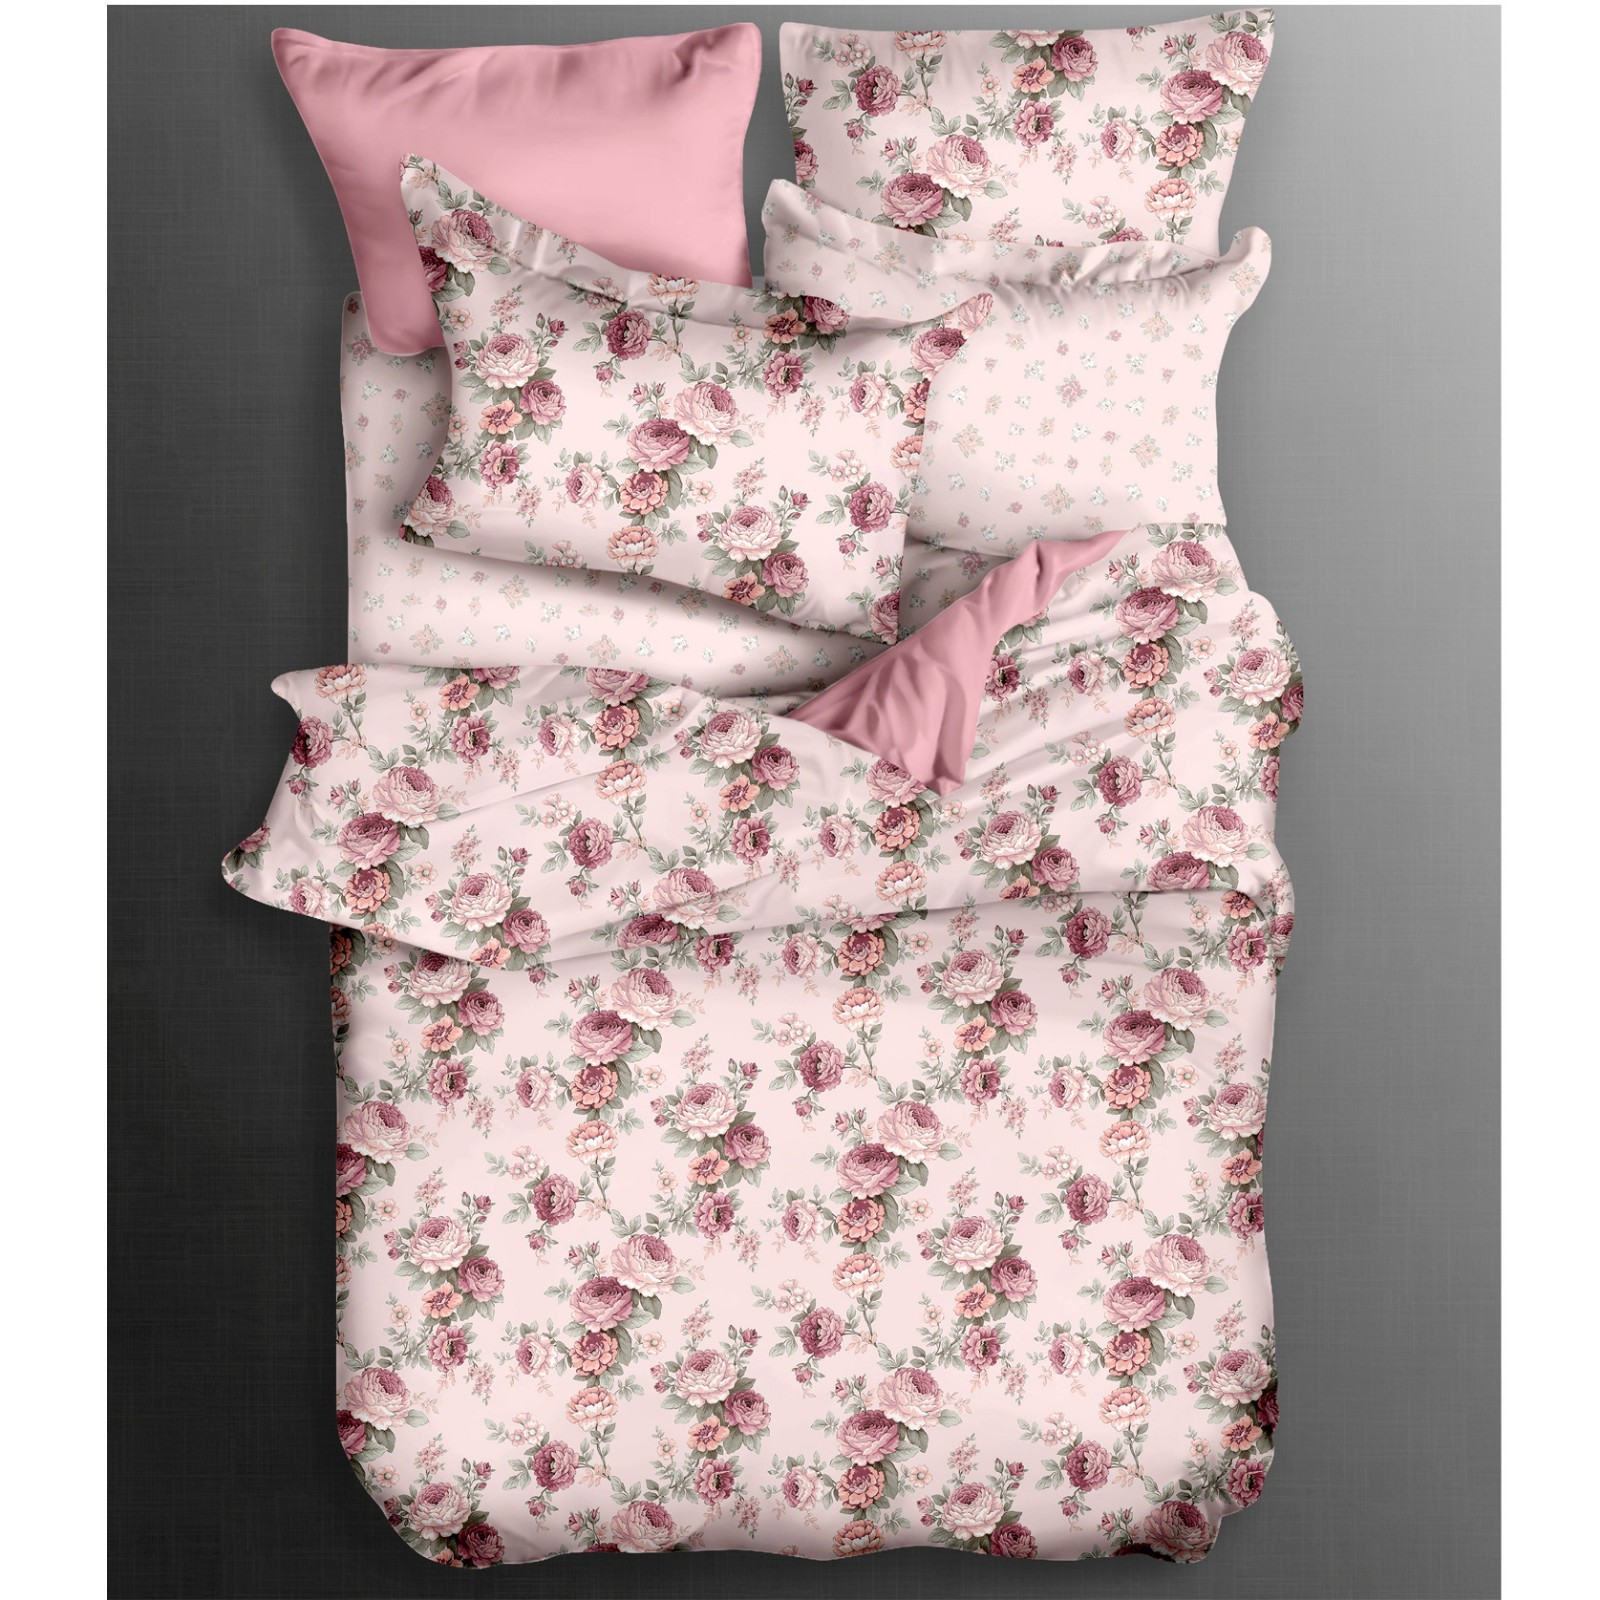 Daphne joint cotton Cotton Bedding Sets print printing